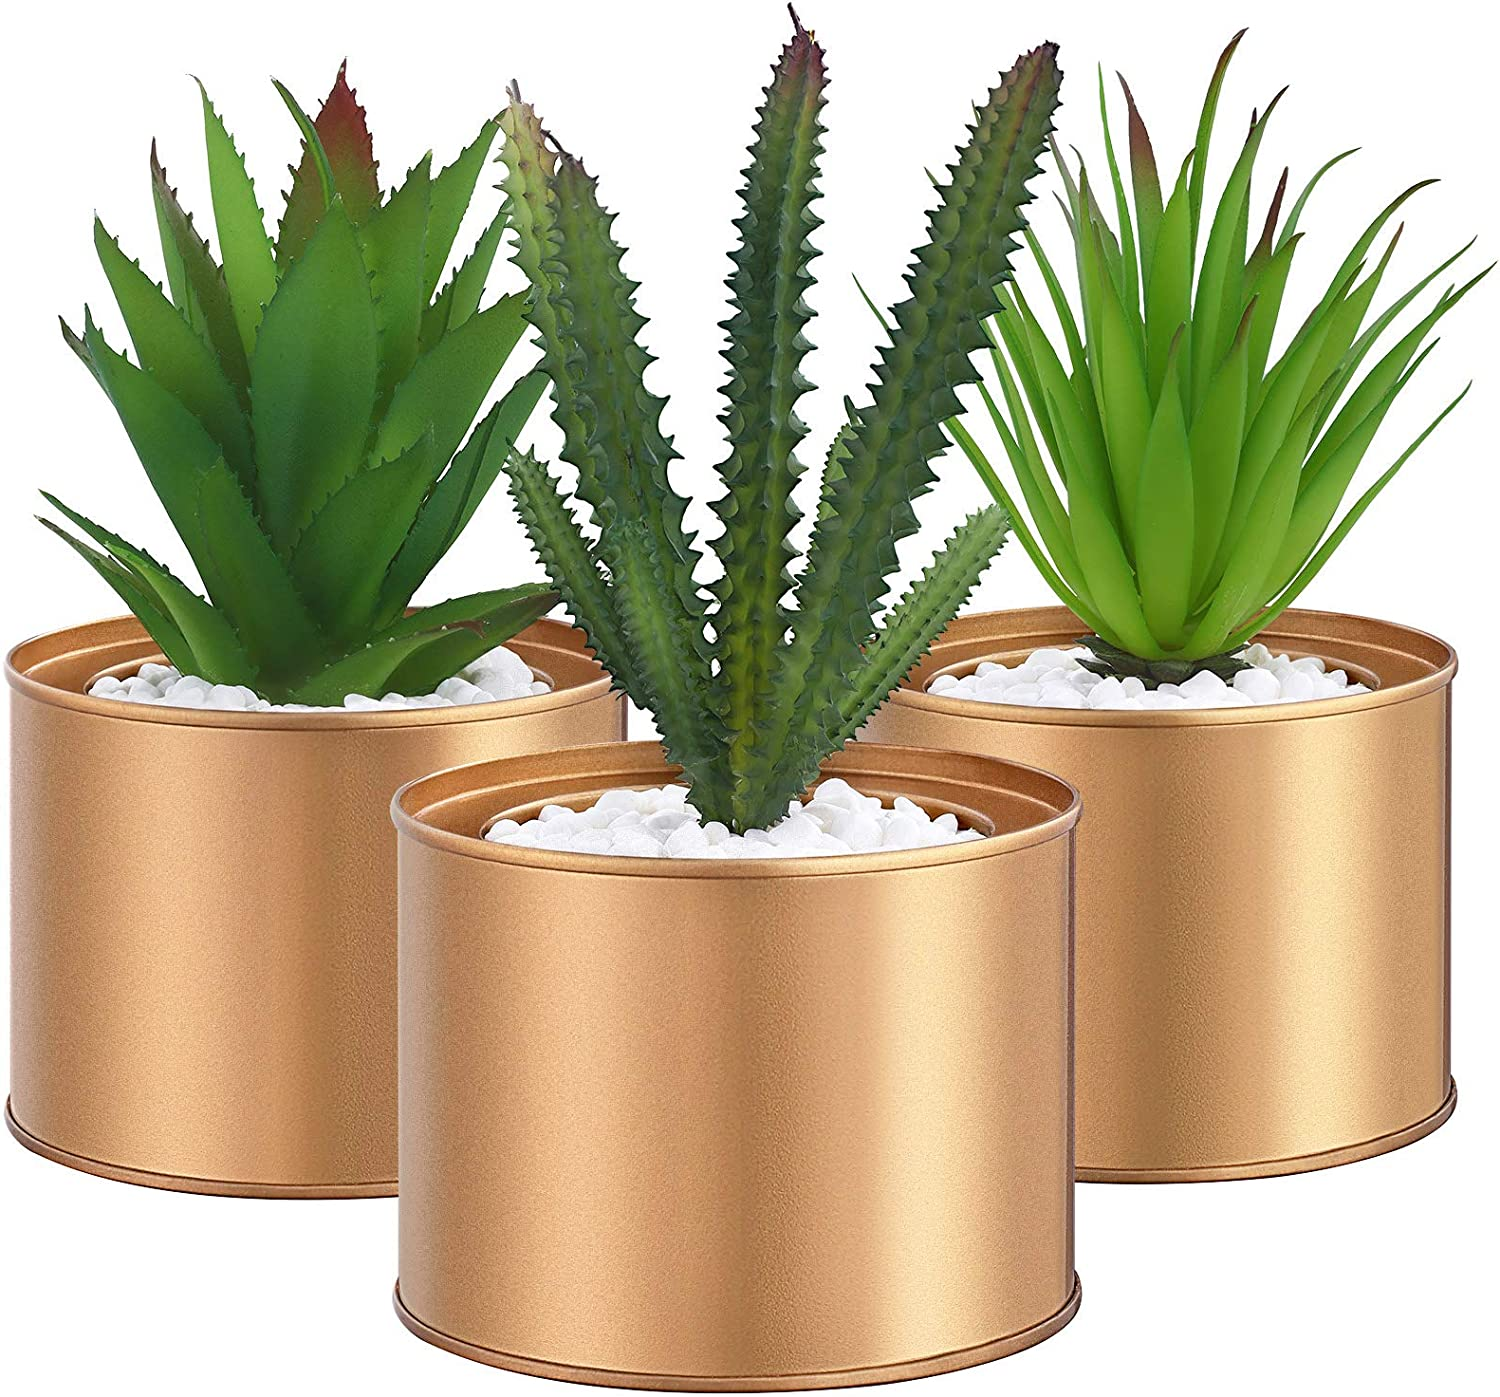 SONGMICS Set of 3 Potted Artificial Plants, Fake Houseplants, Decorative Plants for Living Room, Office, Bookcase, Table Decoration, Golden Pots, Green Plants ULAP204A01